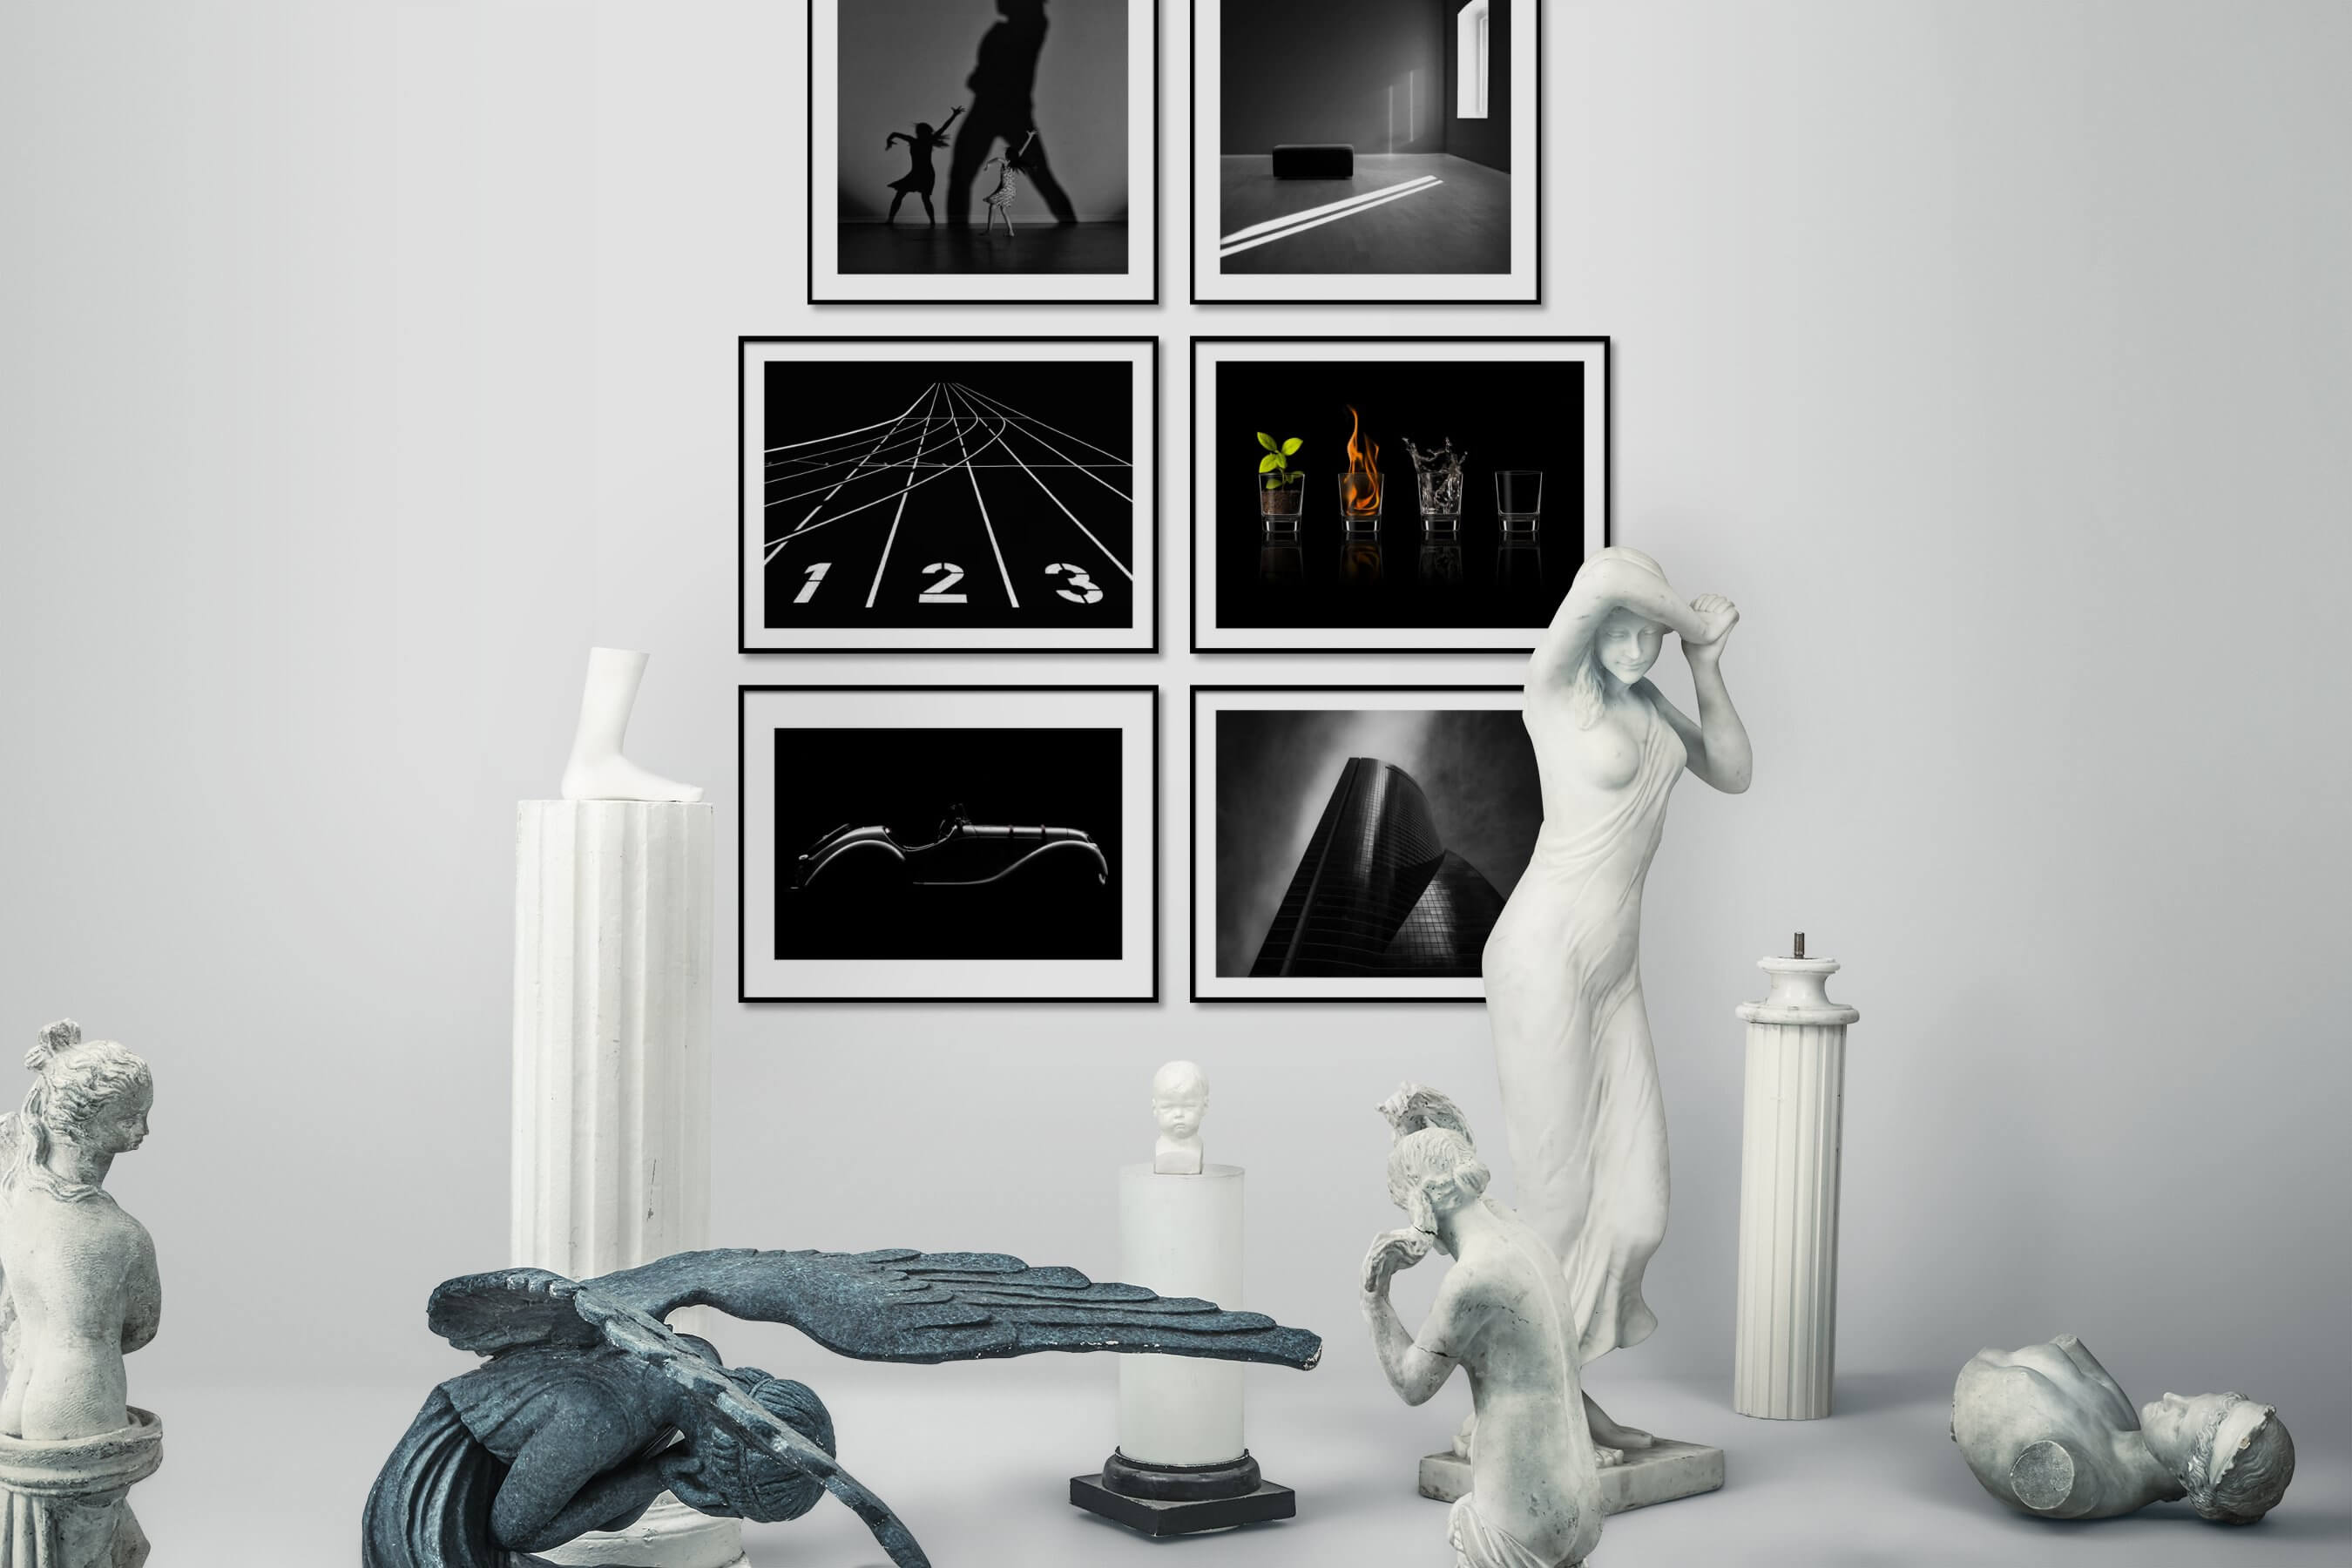 Gallery wall idea with six framed pictures arranged on a wall depicting Fashion & Beauty, Black & White, For the Minimalist, For the Moderate, Vintage, and City Life